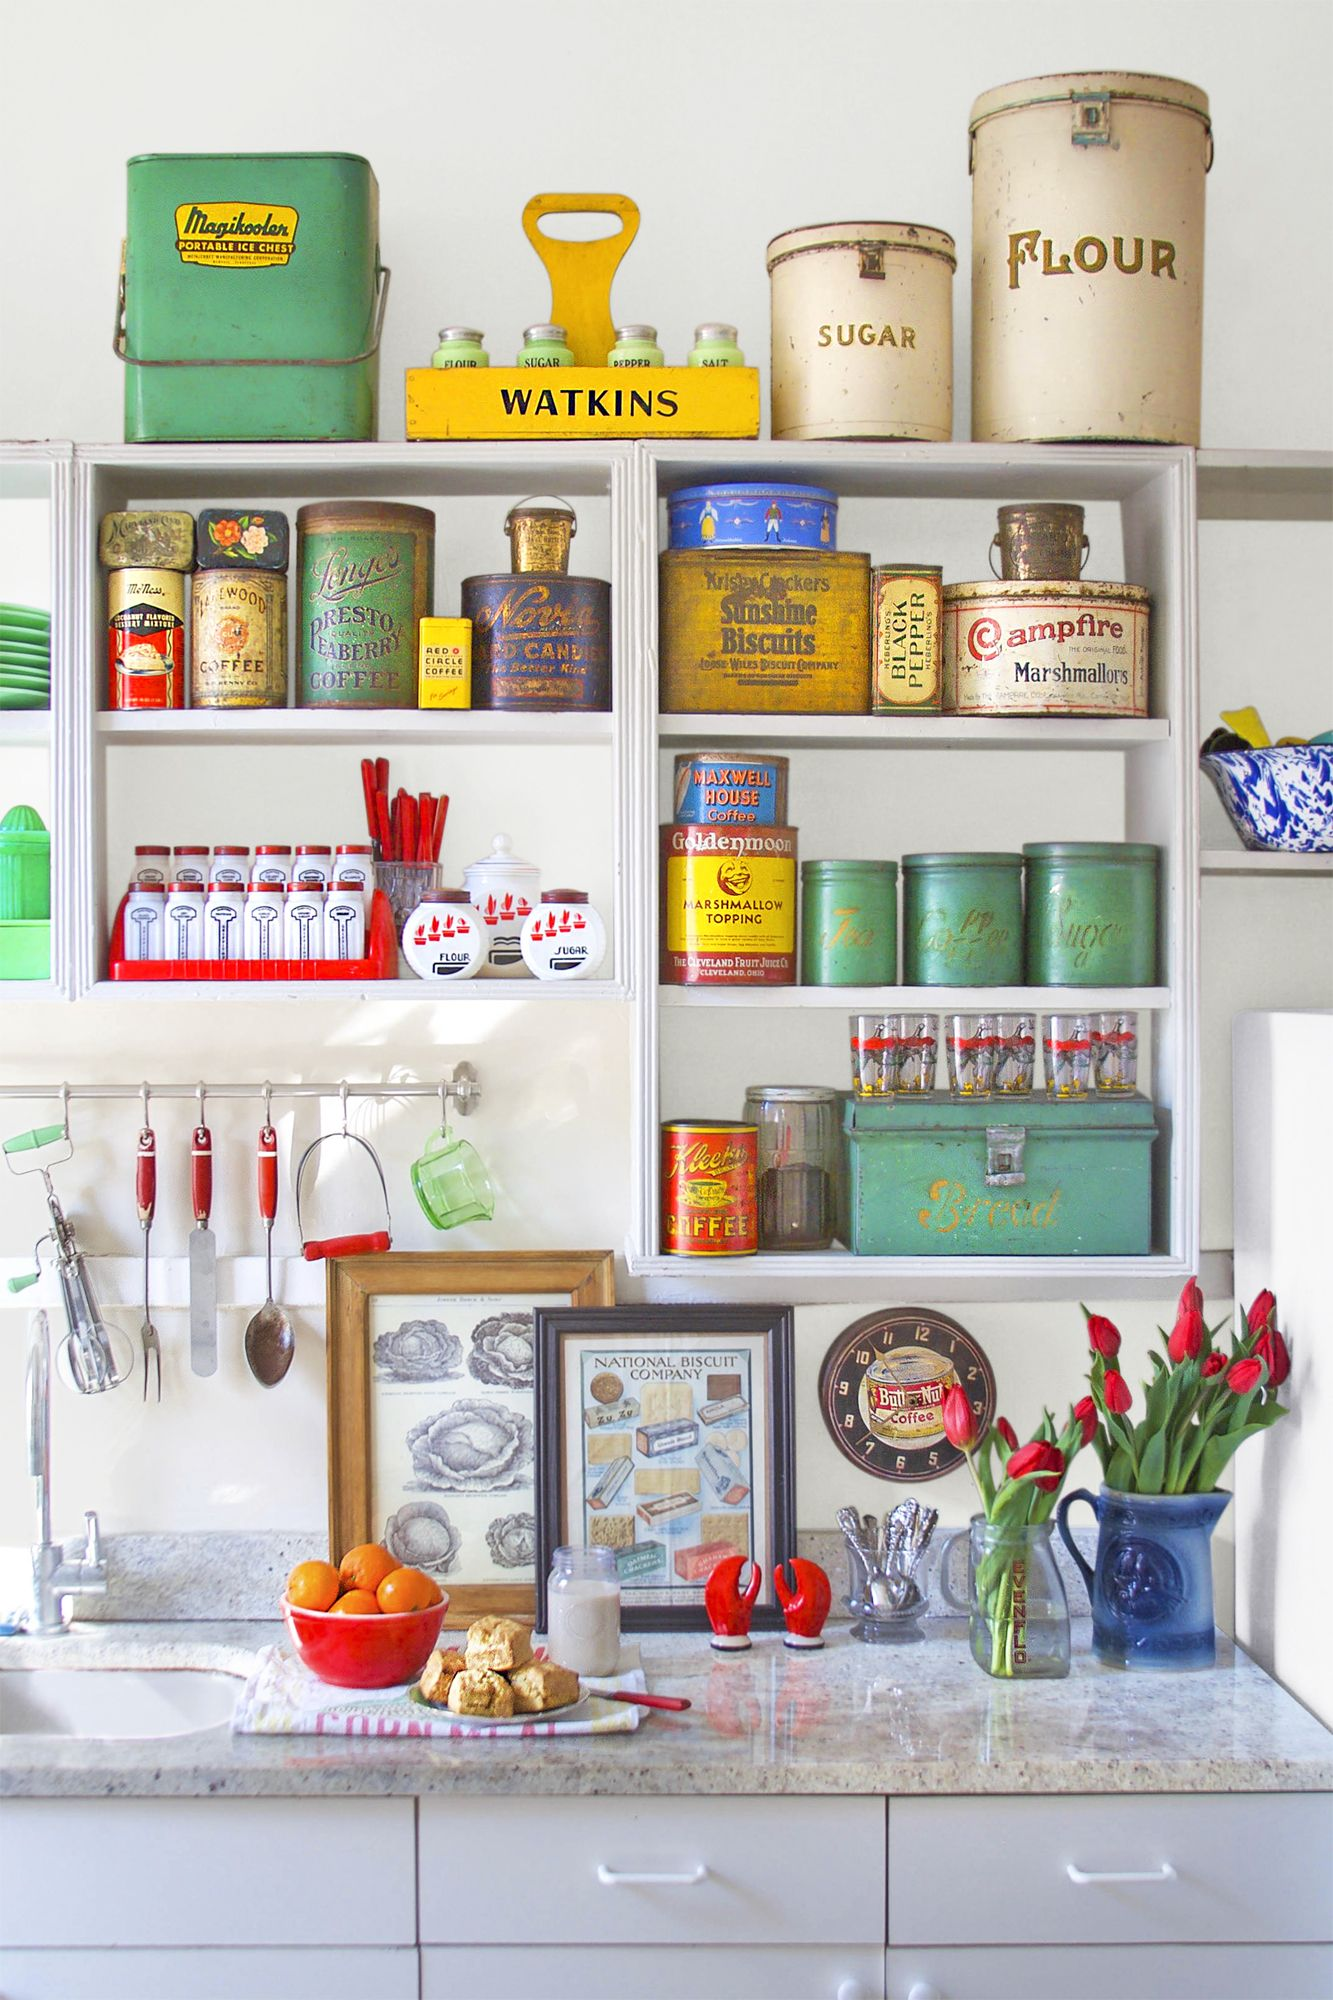 32 of the Best Things to Collect — Things People Collect Ideas Cabinets Kitchen Ligood on